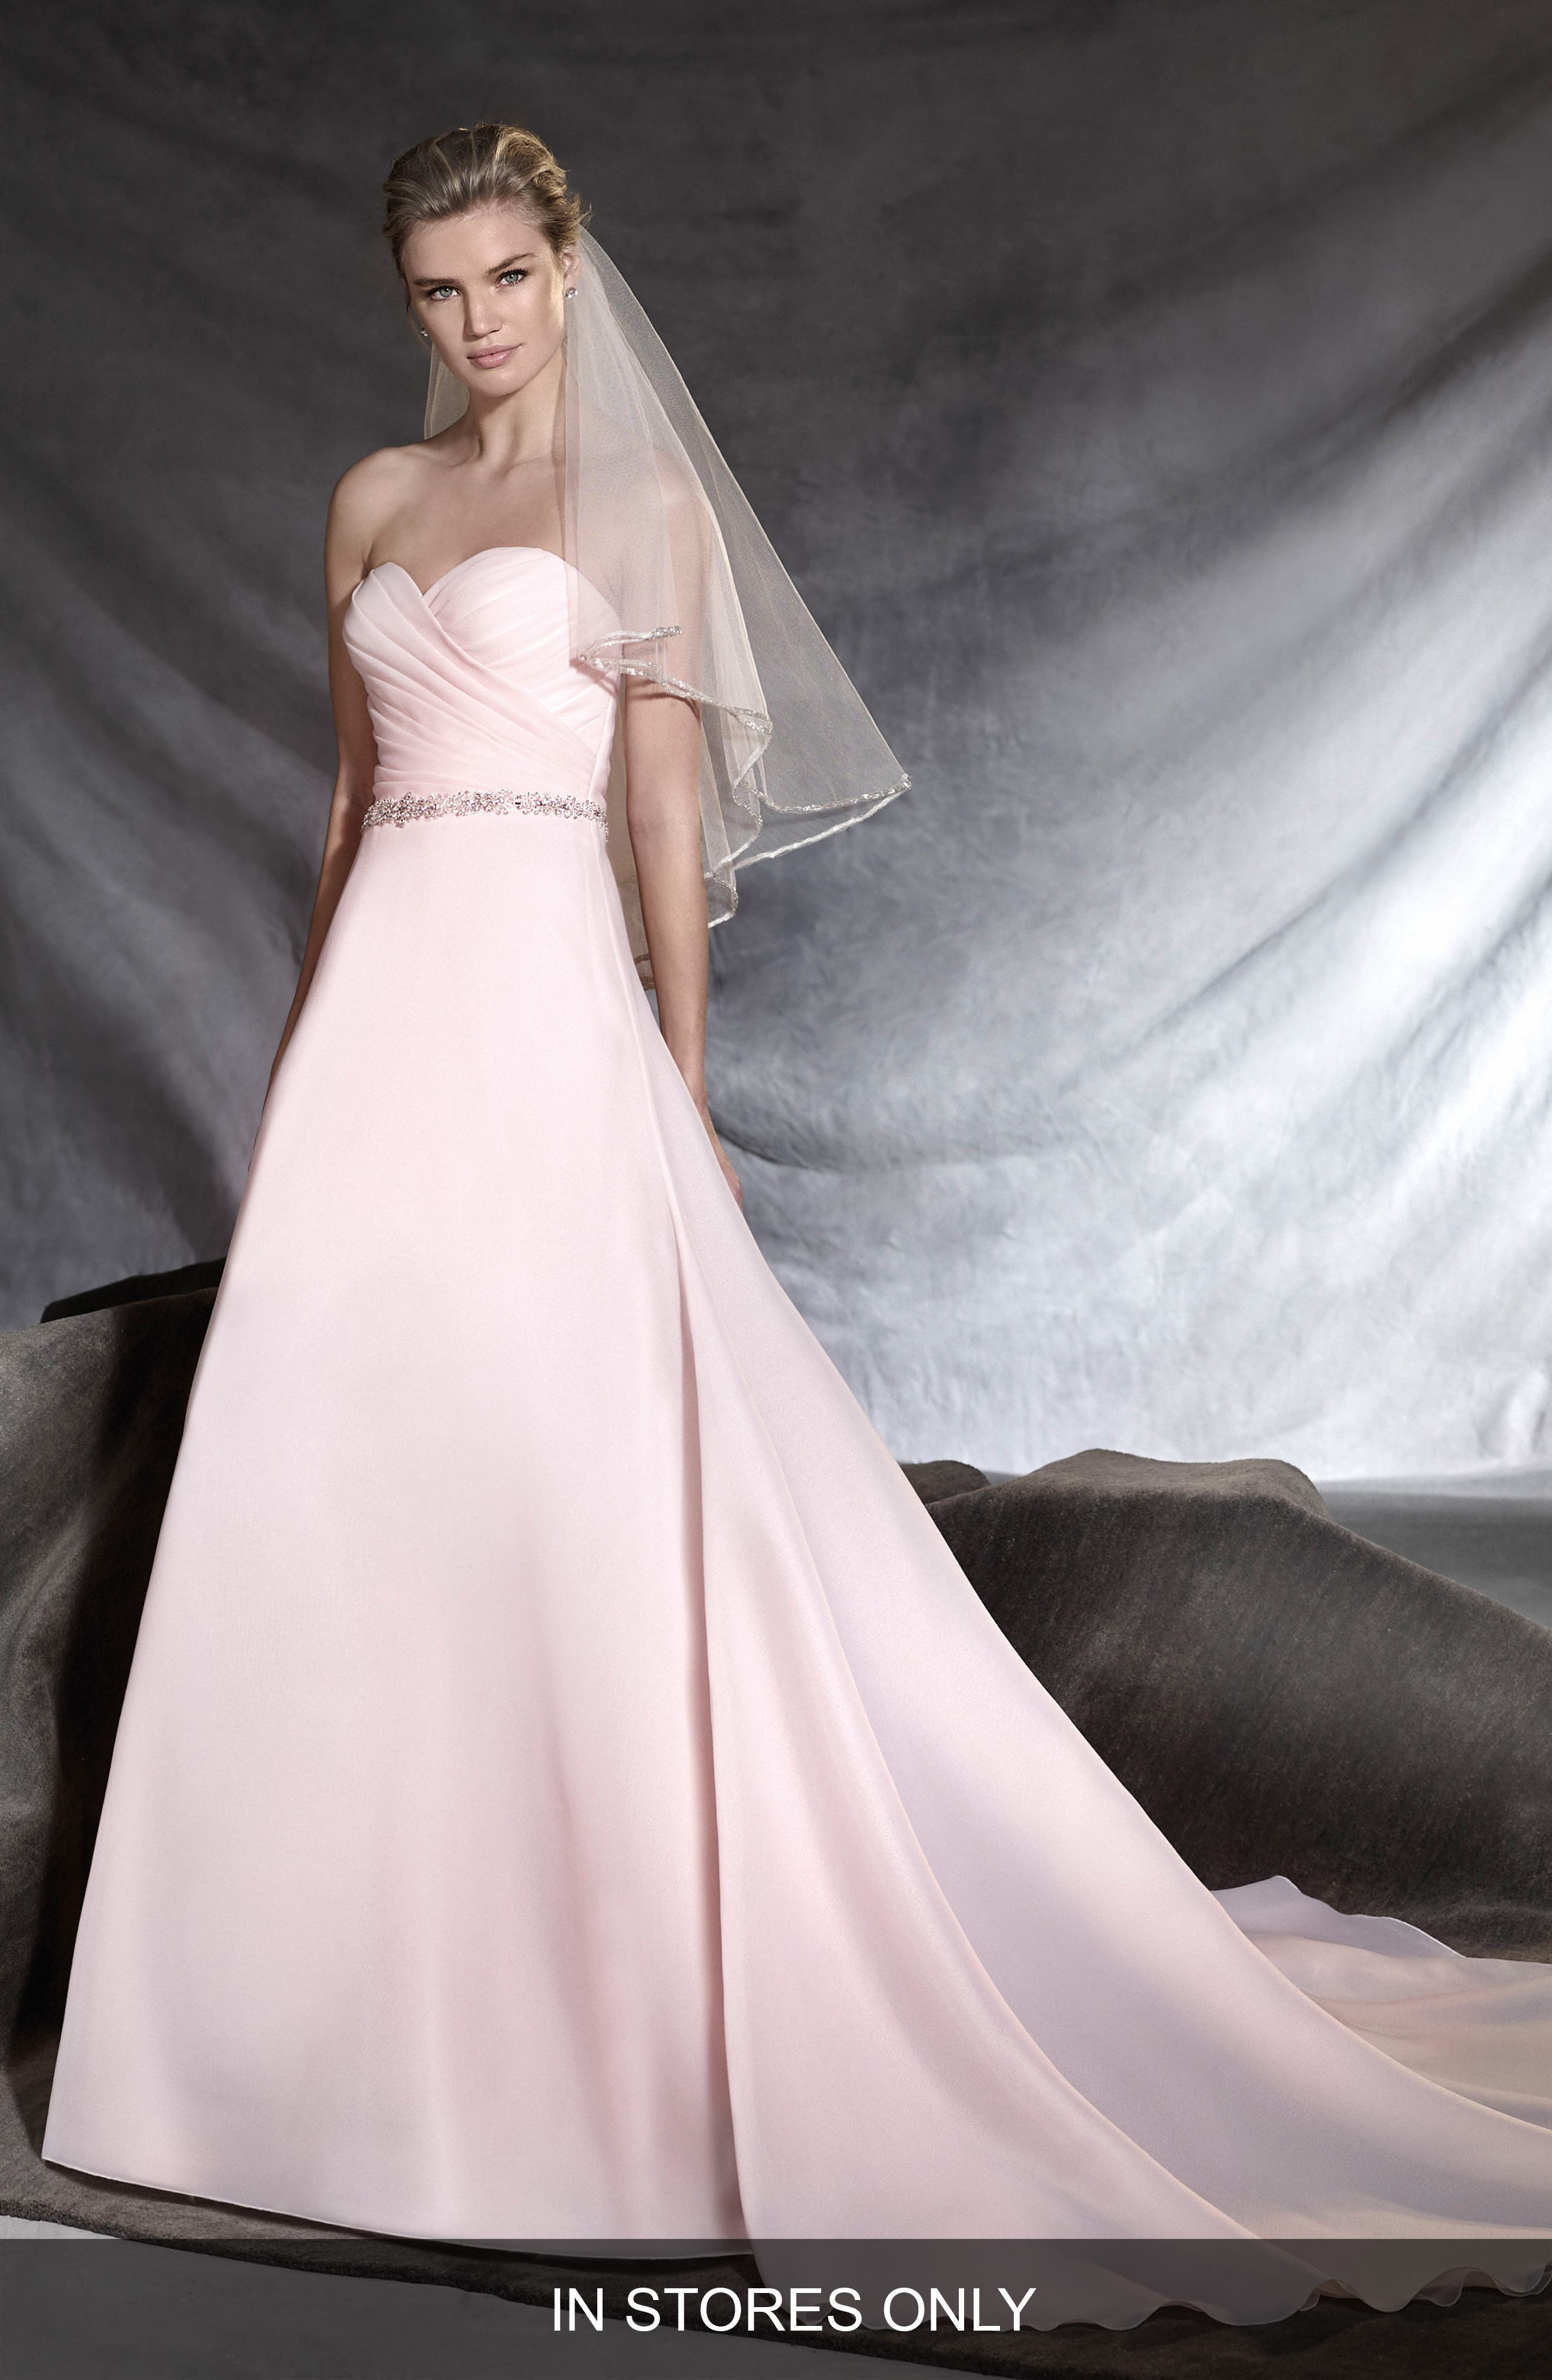 Ortuella Strapless Chiffon A-Line Gown,                             Main thumbnail 1, color,